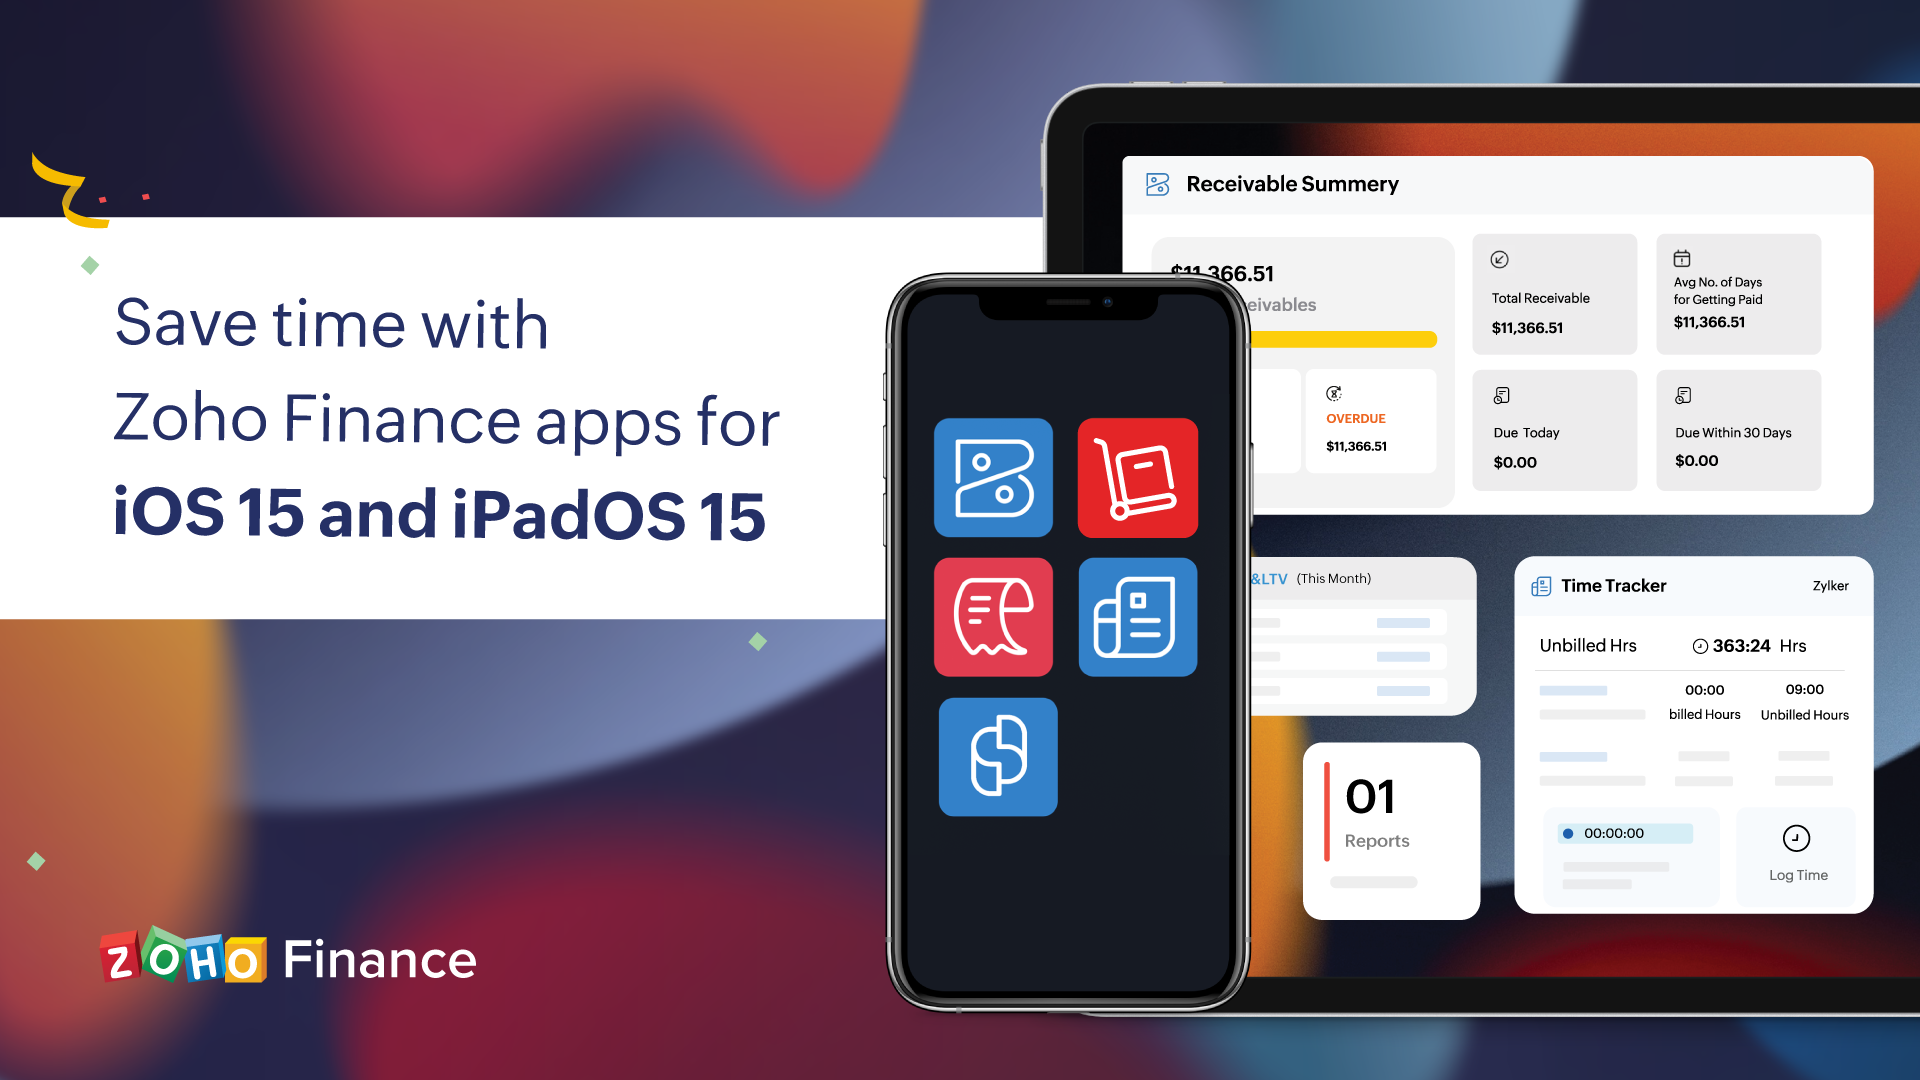 Live Text, extra-large widgets, and more:  Save time with Zoho Finance apps for iOS 15 and iPadOS 15